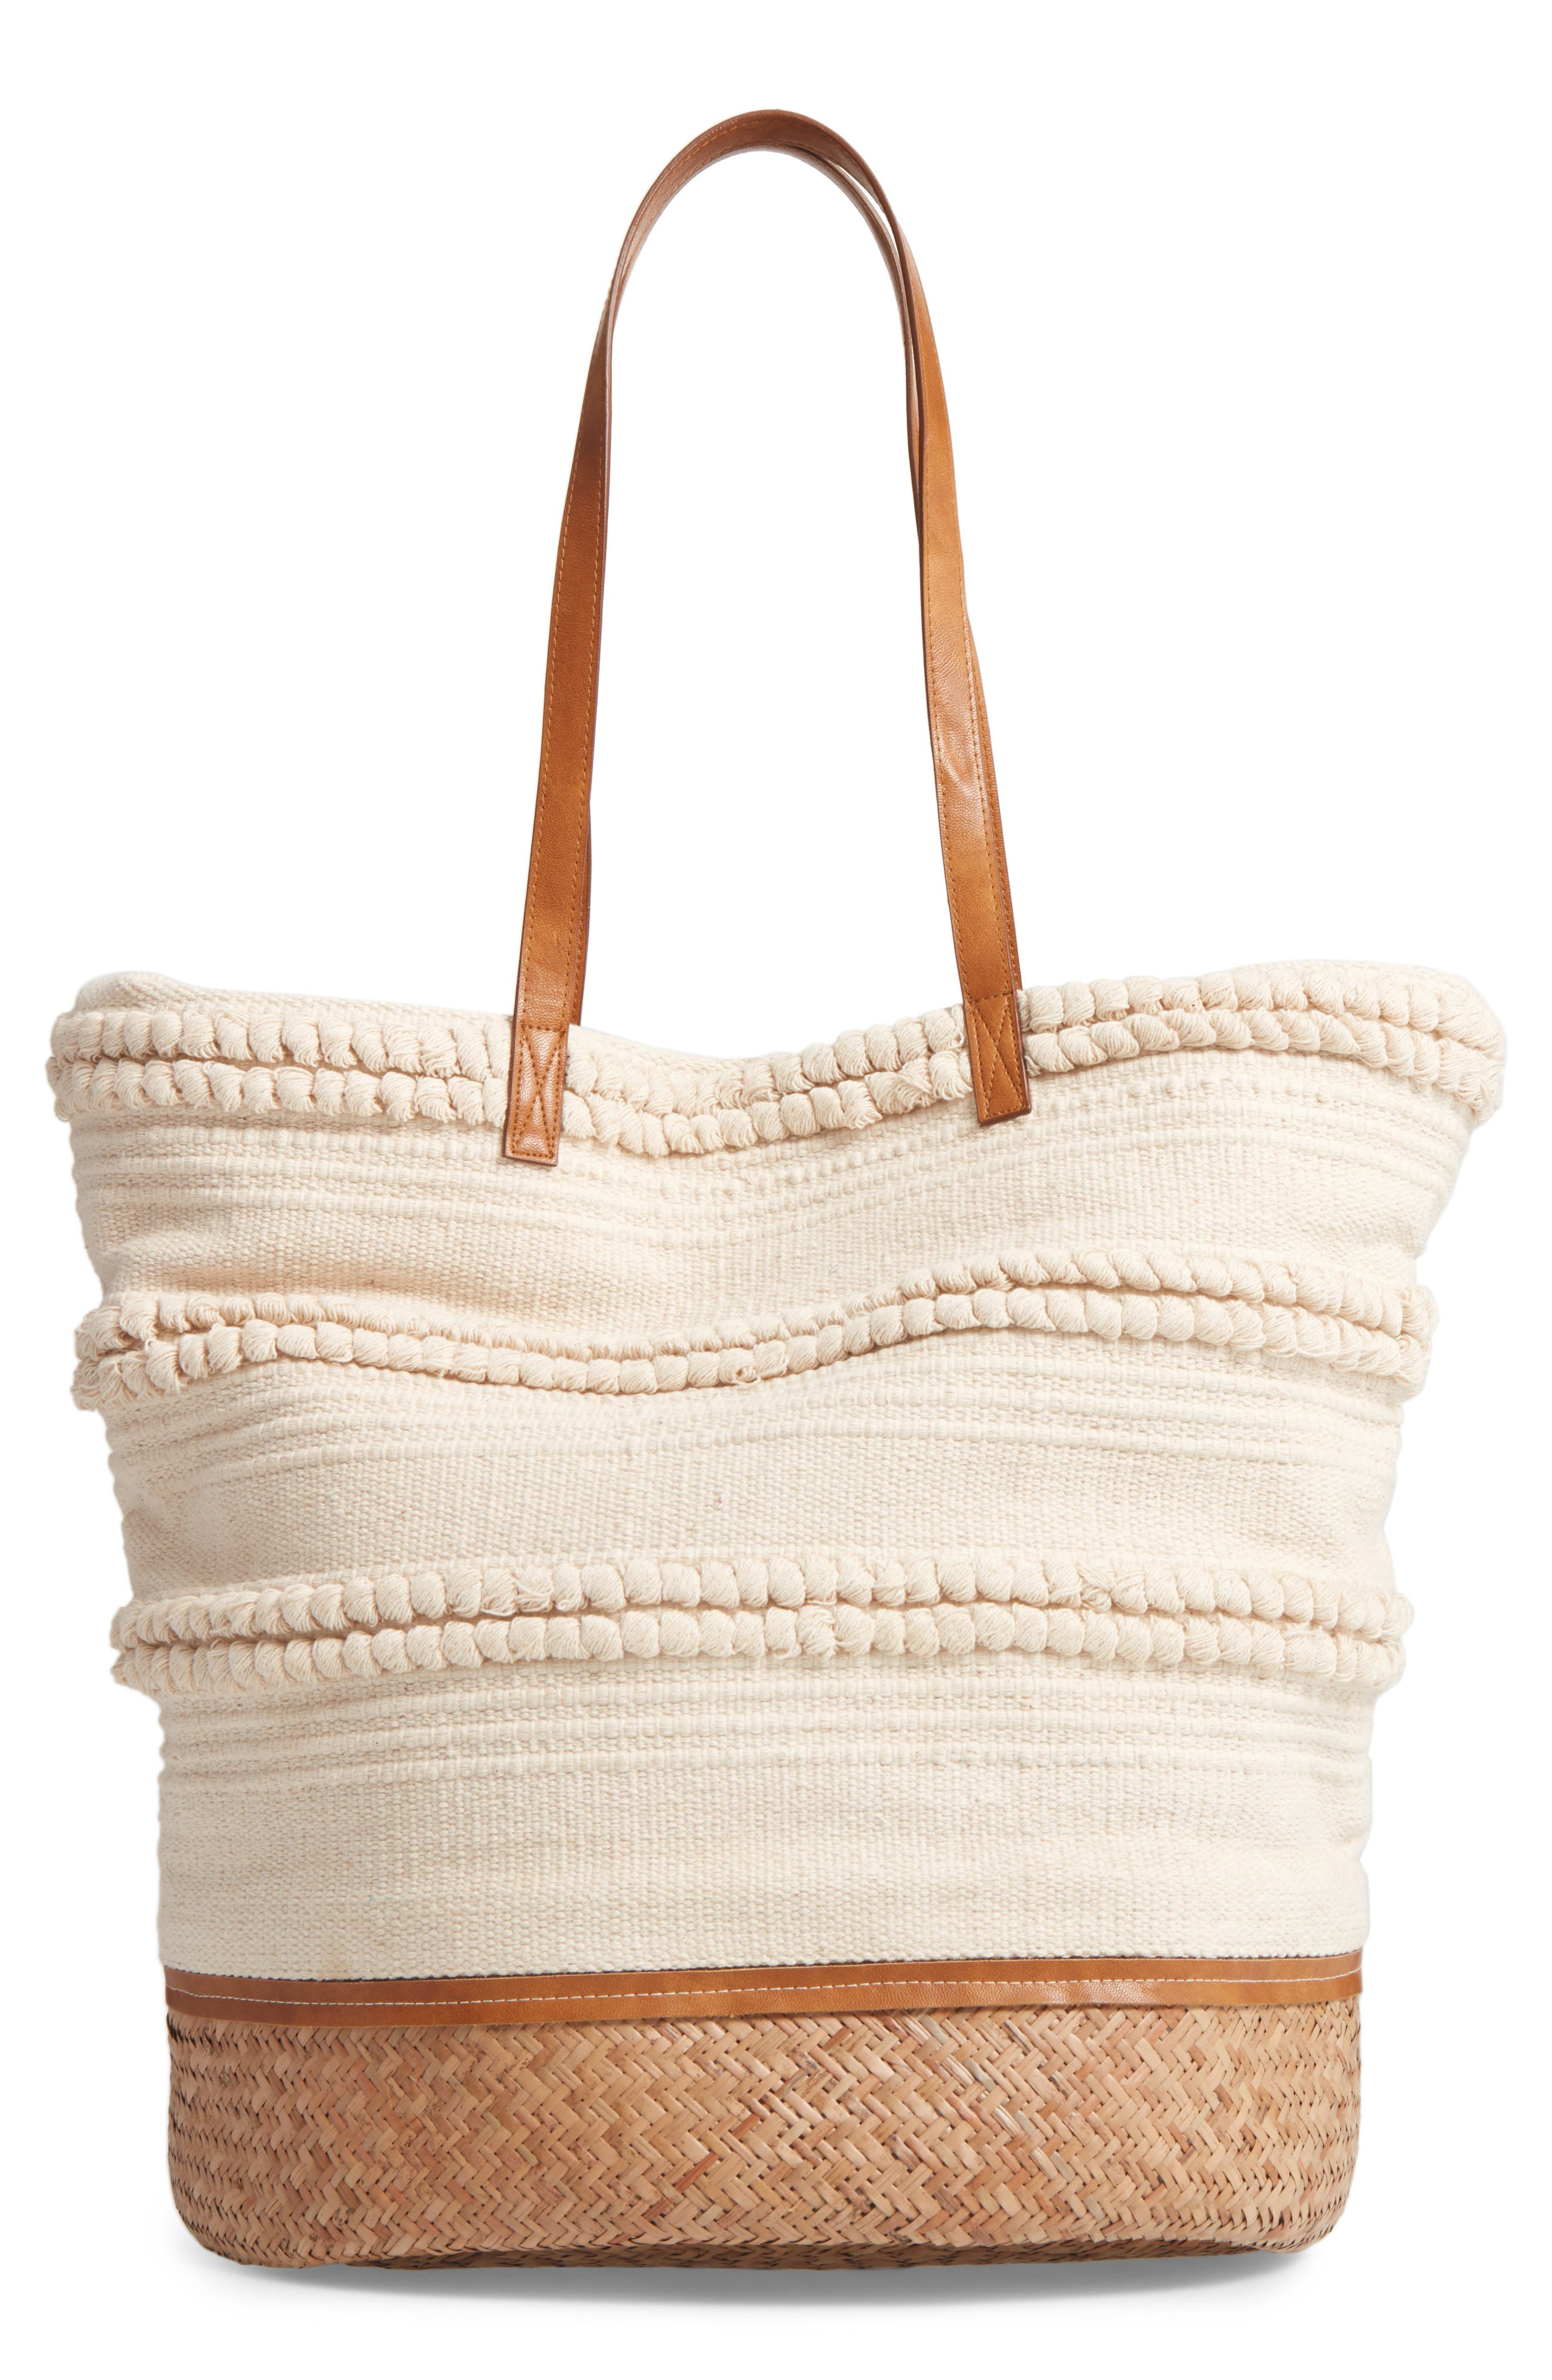 Alternate Image 1 Selected - Sole Society Woven Bottom Tote